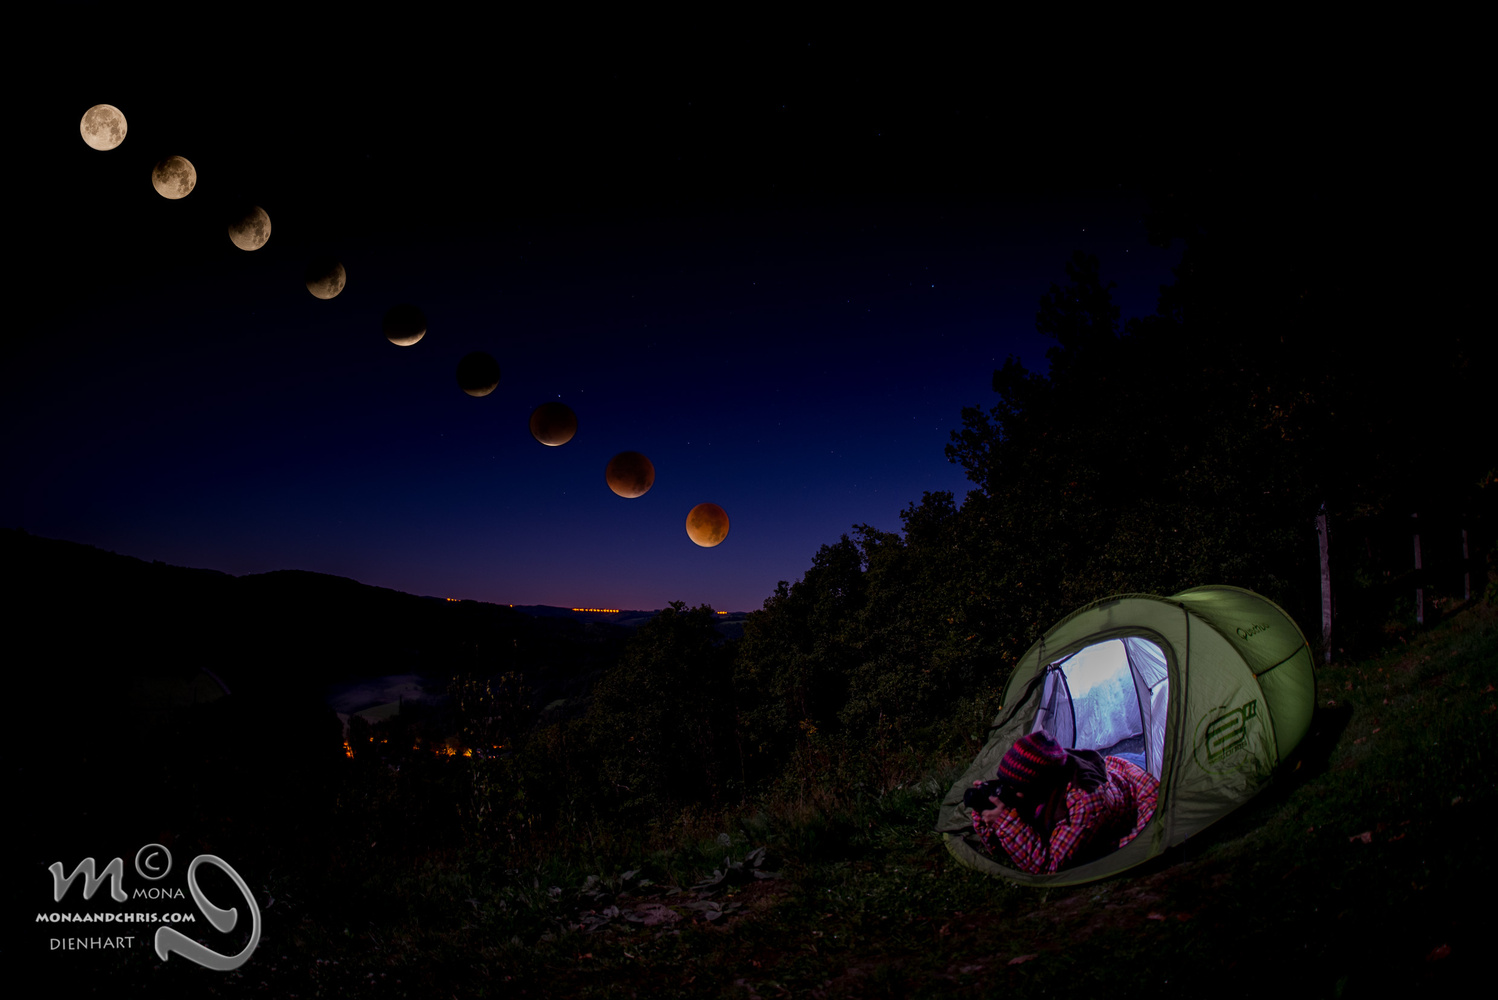 Total eclipse of the moon by Mona Dienhart